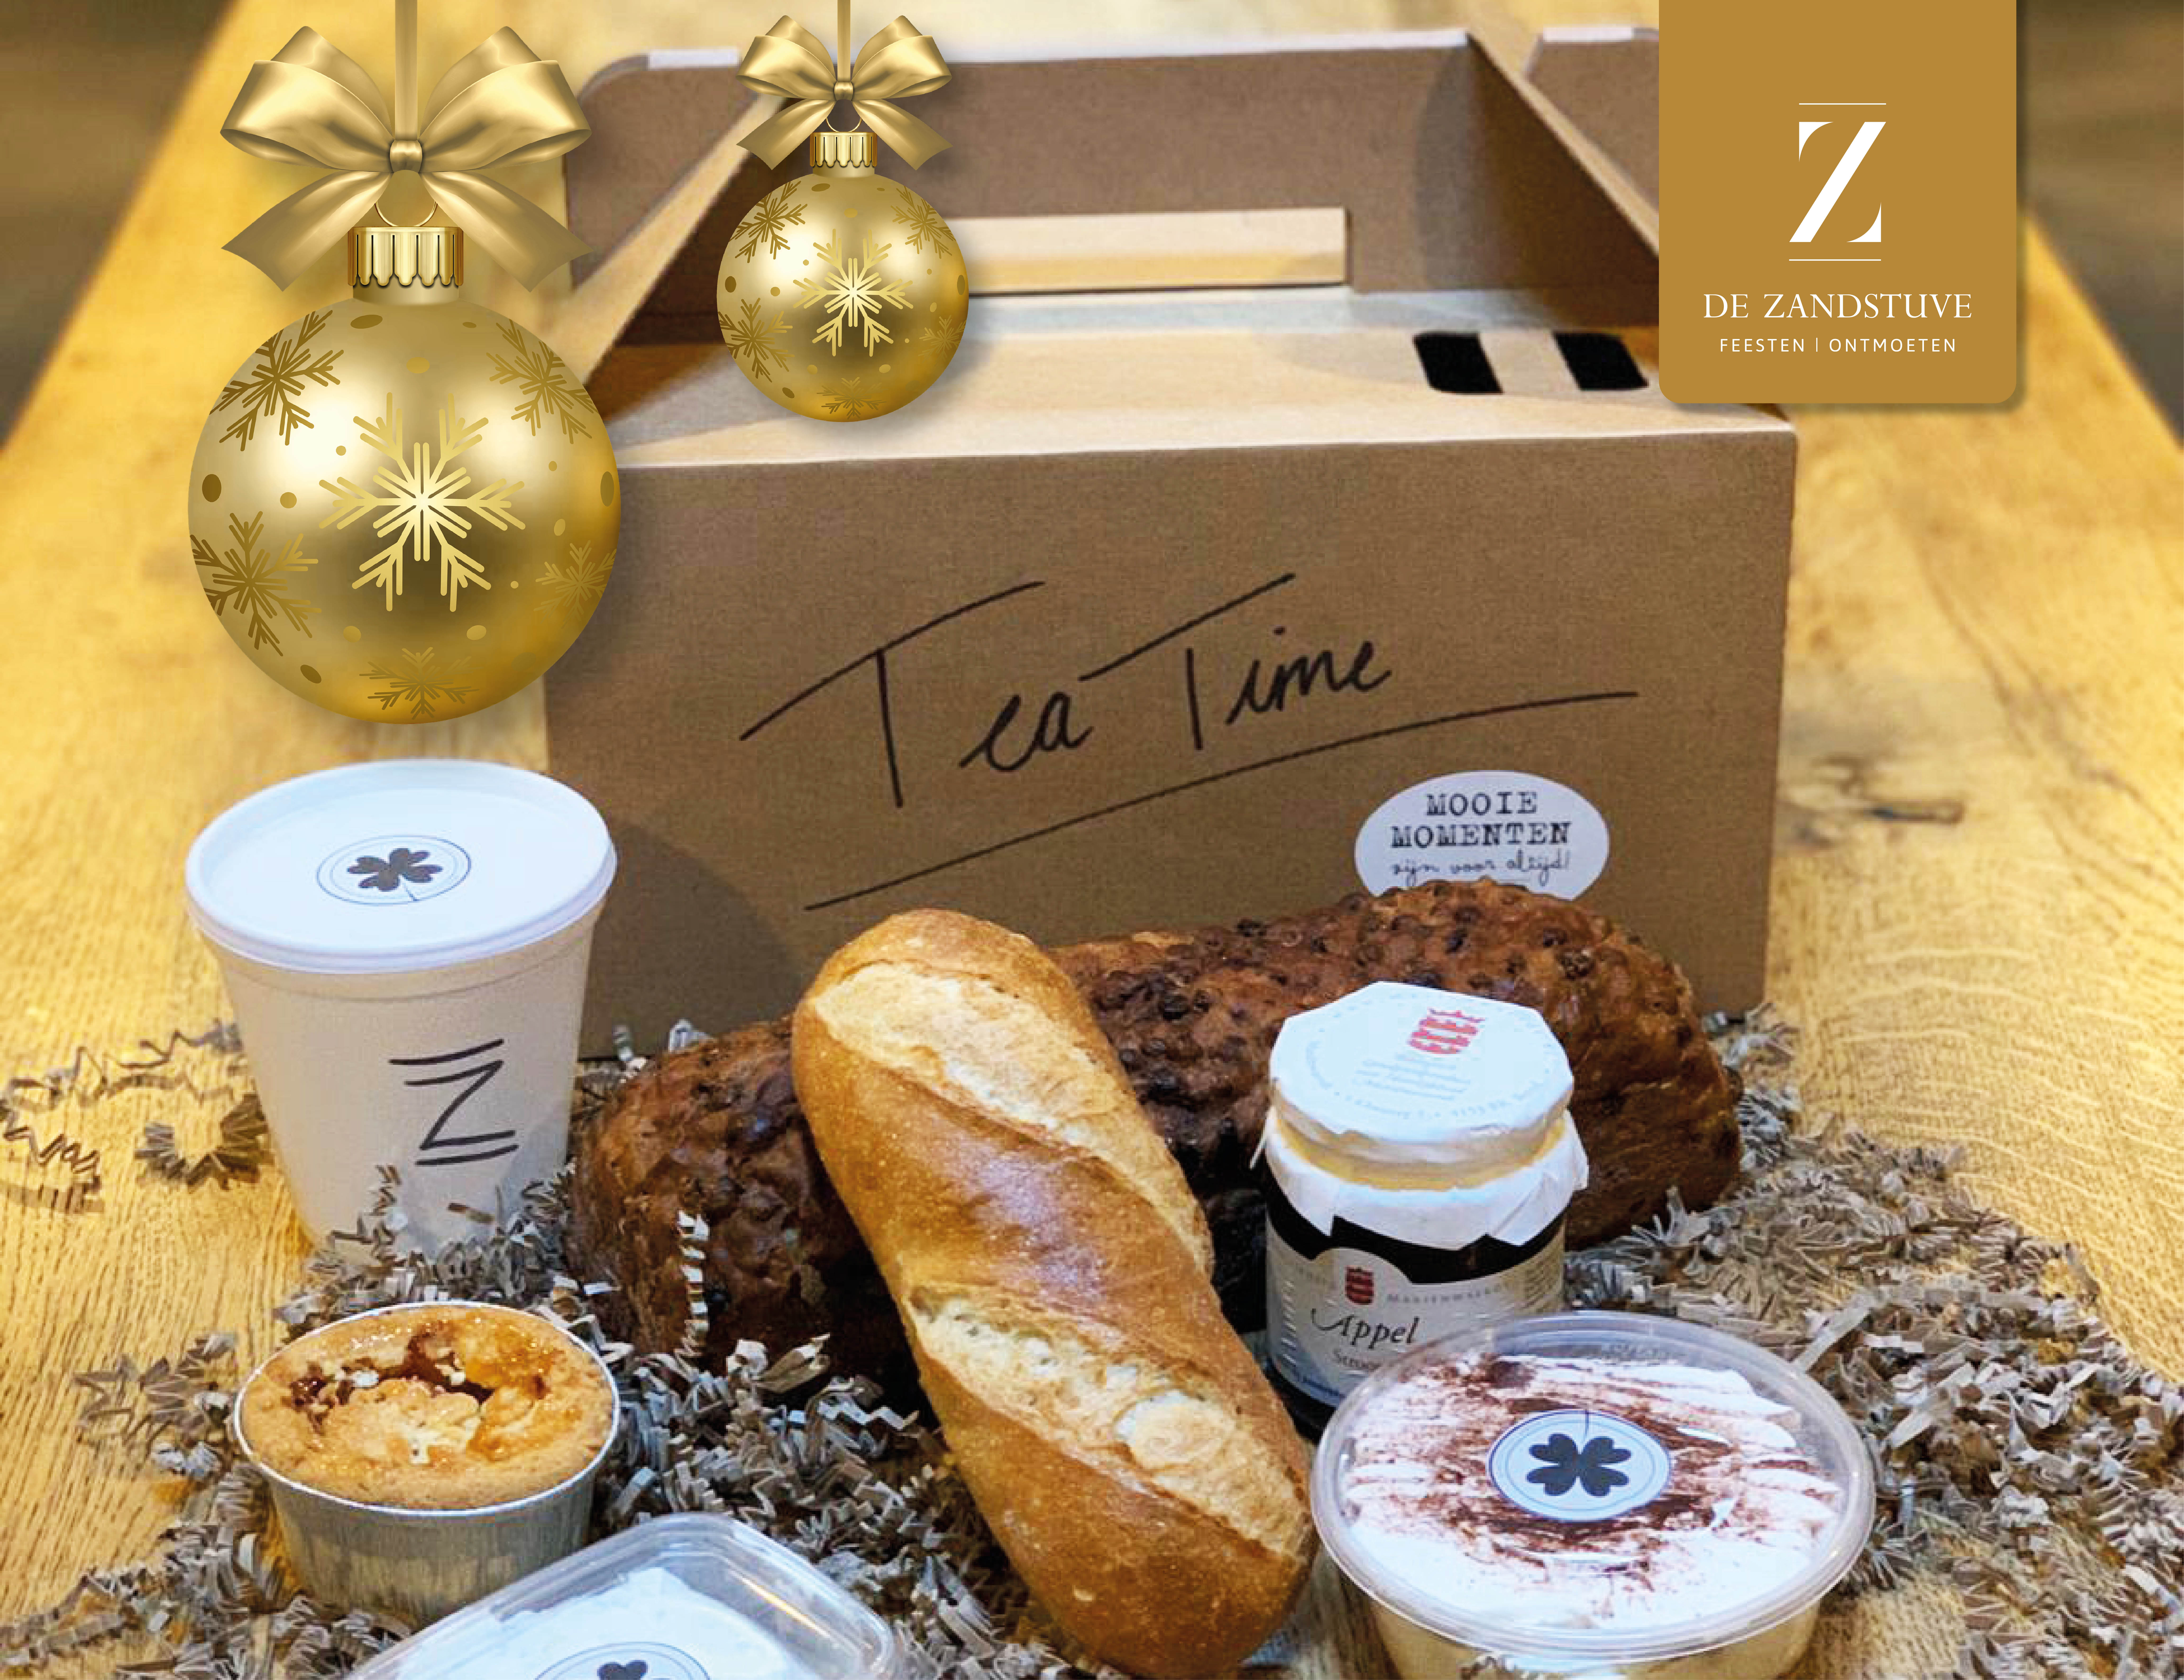 Kerstpakket 3 tea timebox